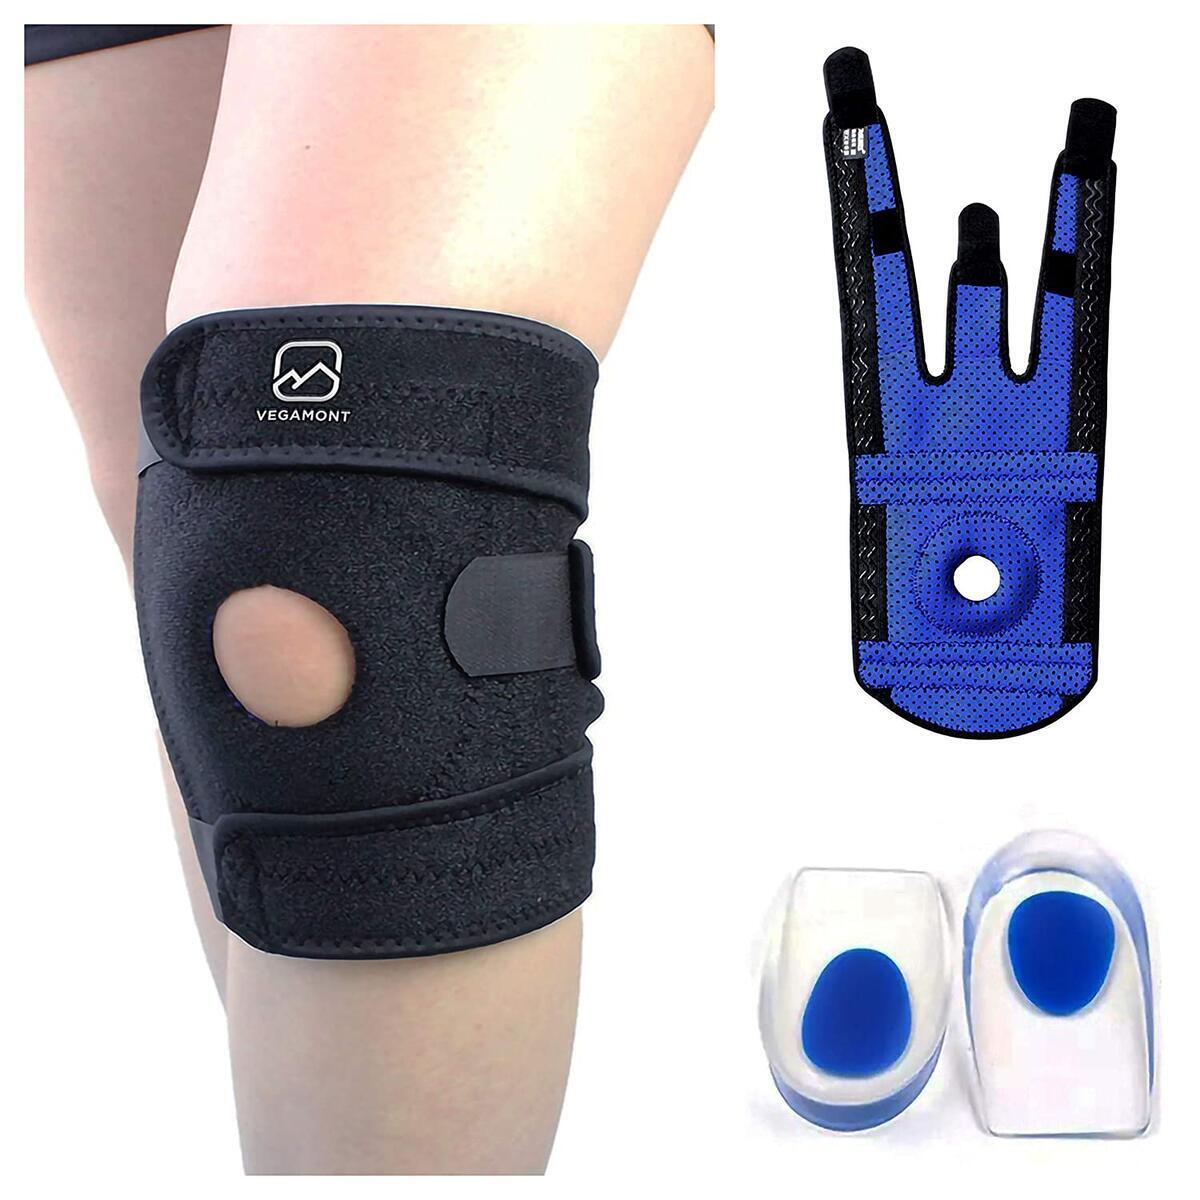 VEGAMONT Knee Brace Support for Women and Men - Adjustable Open Patella Neoprene Strap- Reduce pain & Protect from Injury - Non Sl